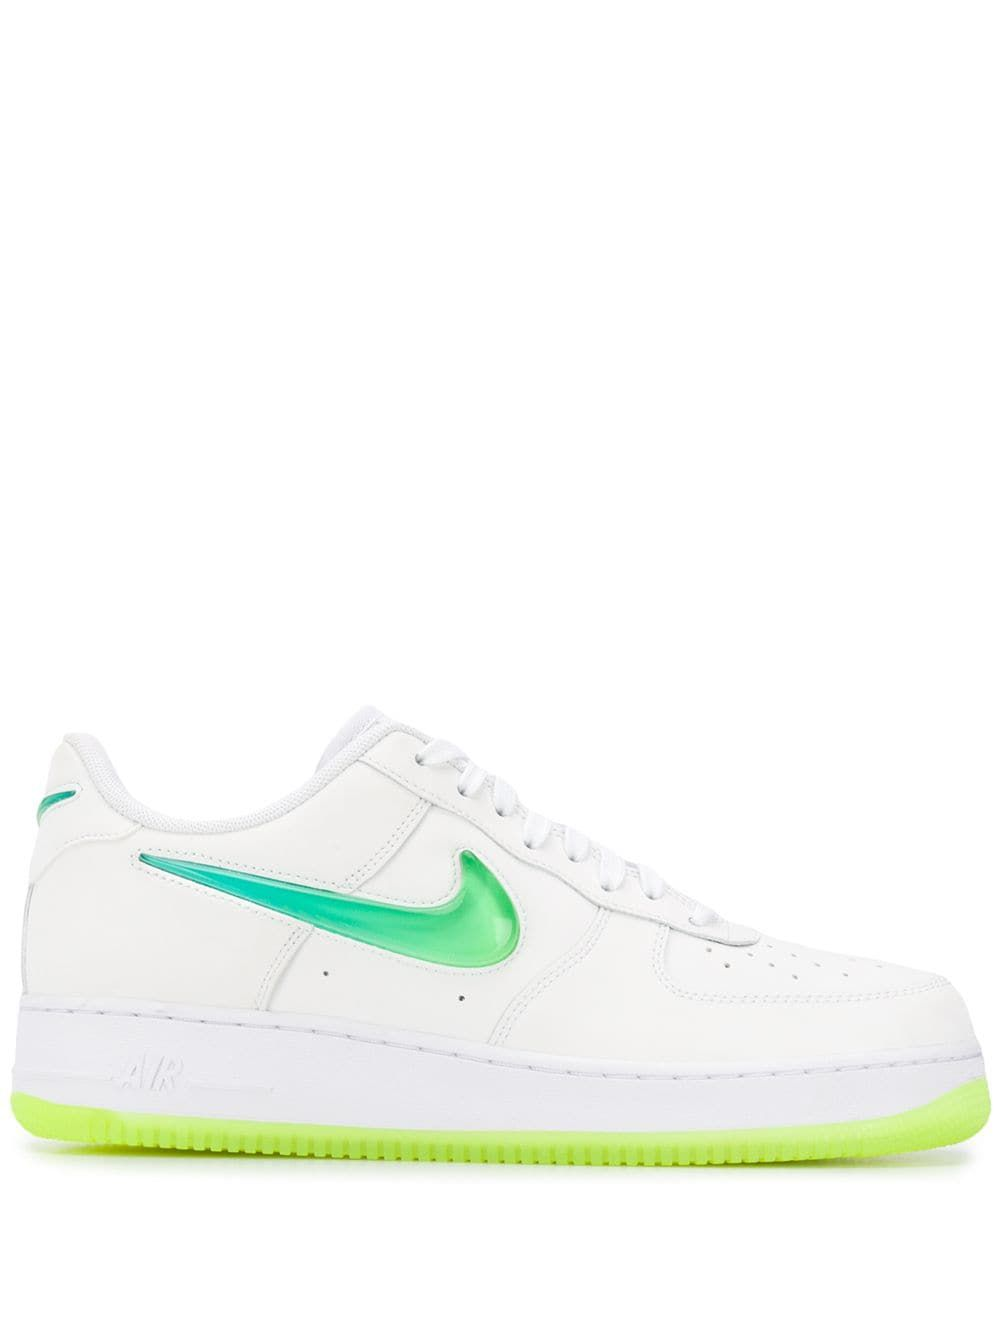 Air Force 1 07 Premium sneakers | Nike air force, Nike air, Nike